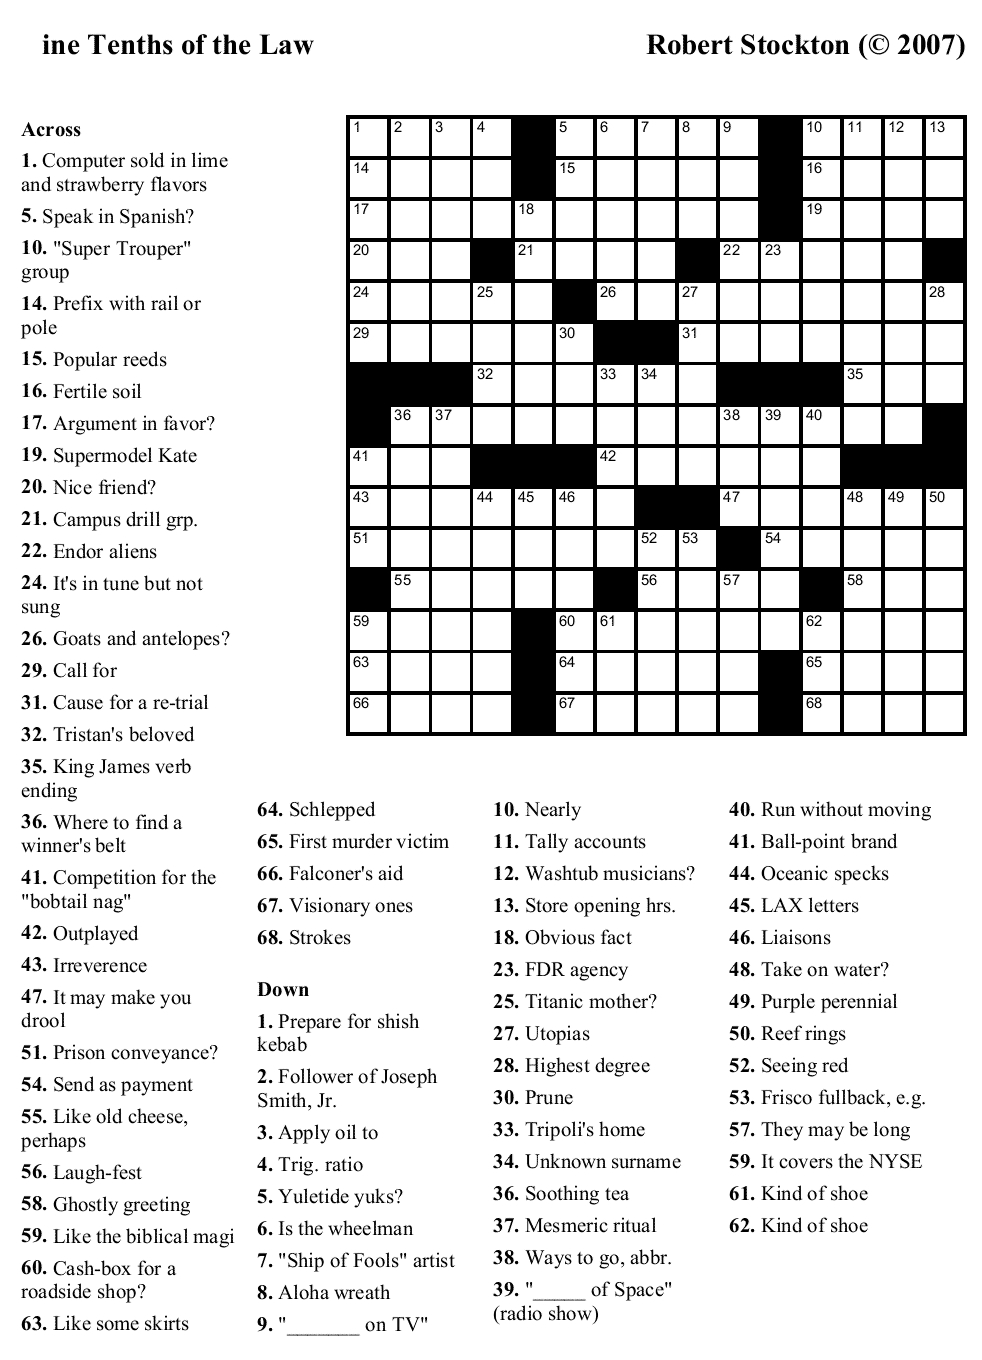 Easy Printable Crossword Puzzels - Infocap Ltd. - Printable Crossword Puzzles For Adults Easy